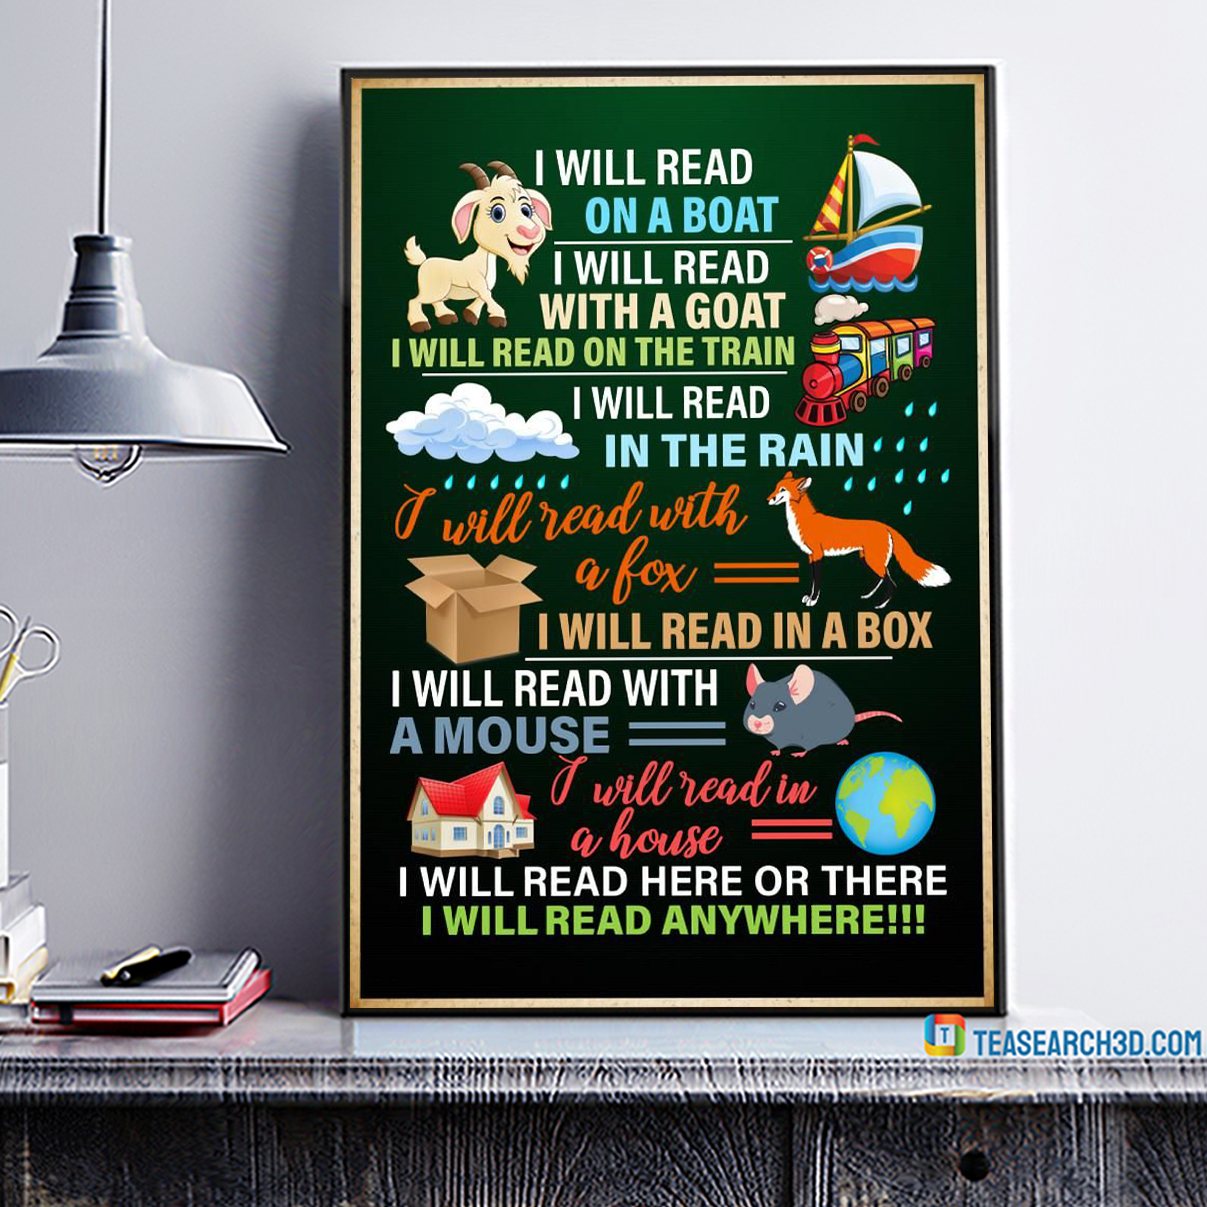 I will read on a boat I will read with a goat poster A2